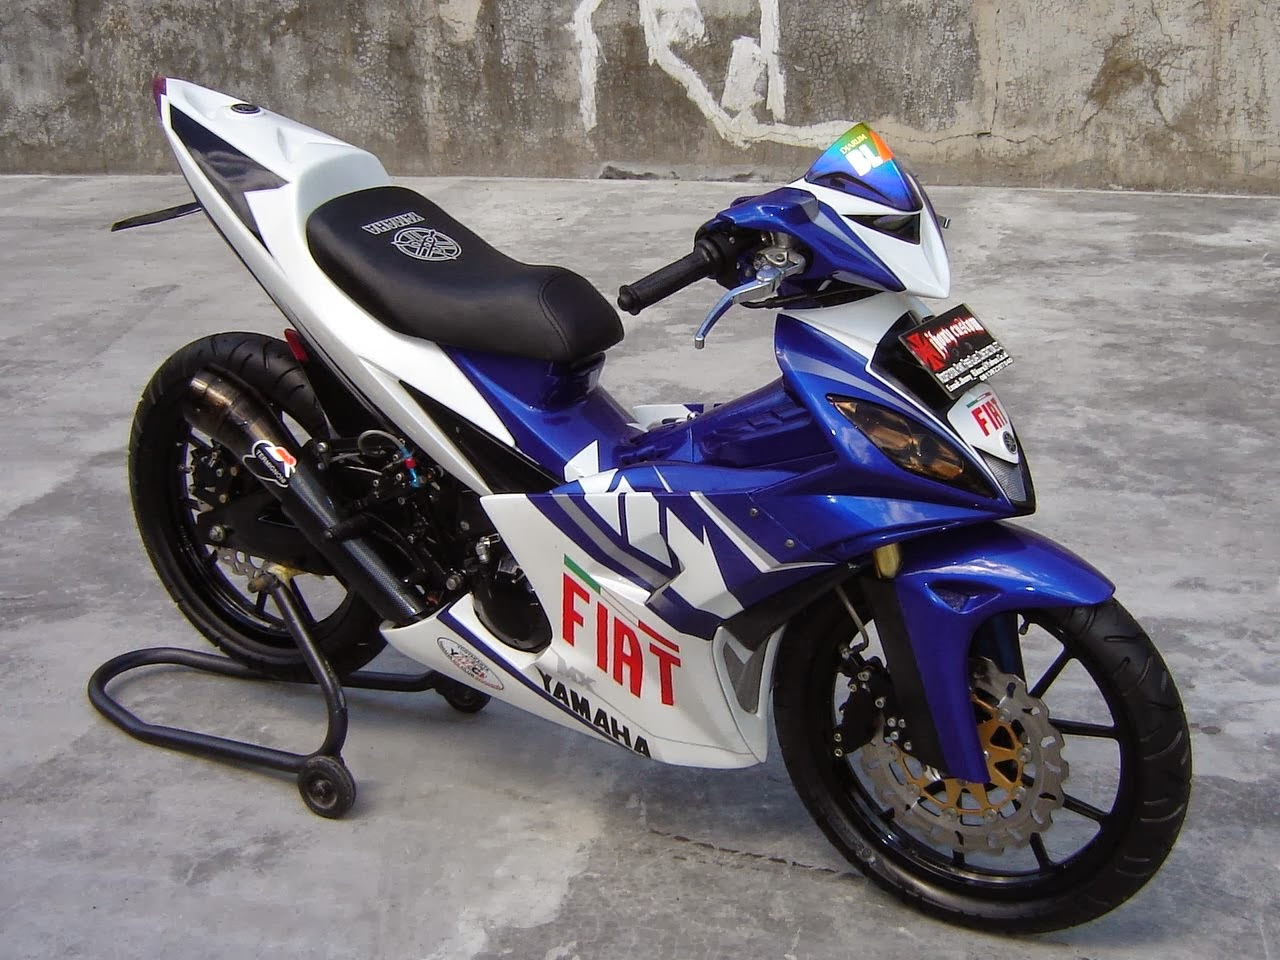 MODIFIKASI MOTOR TUA 02 17 16